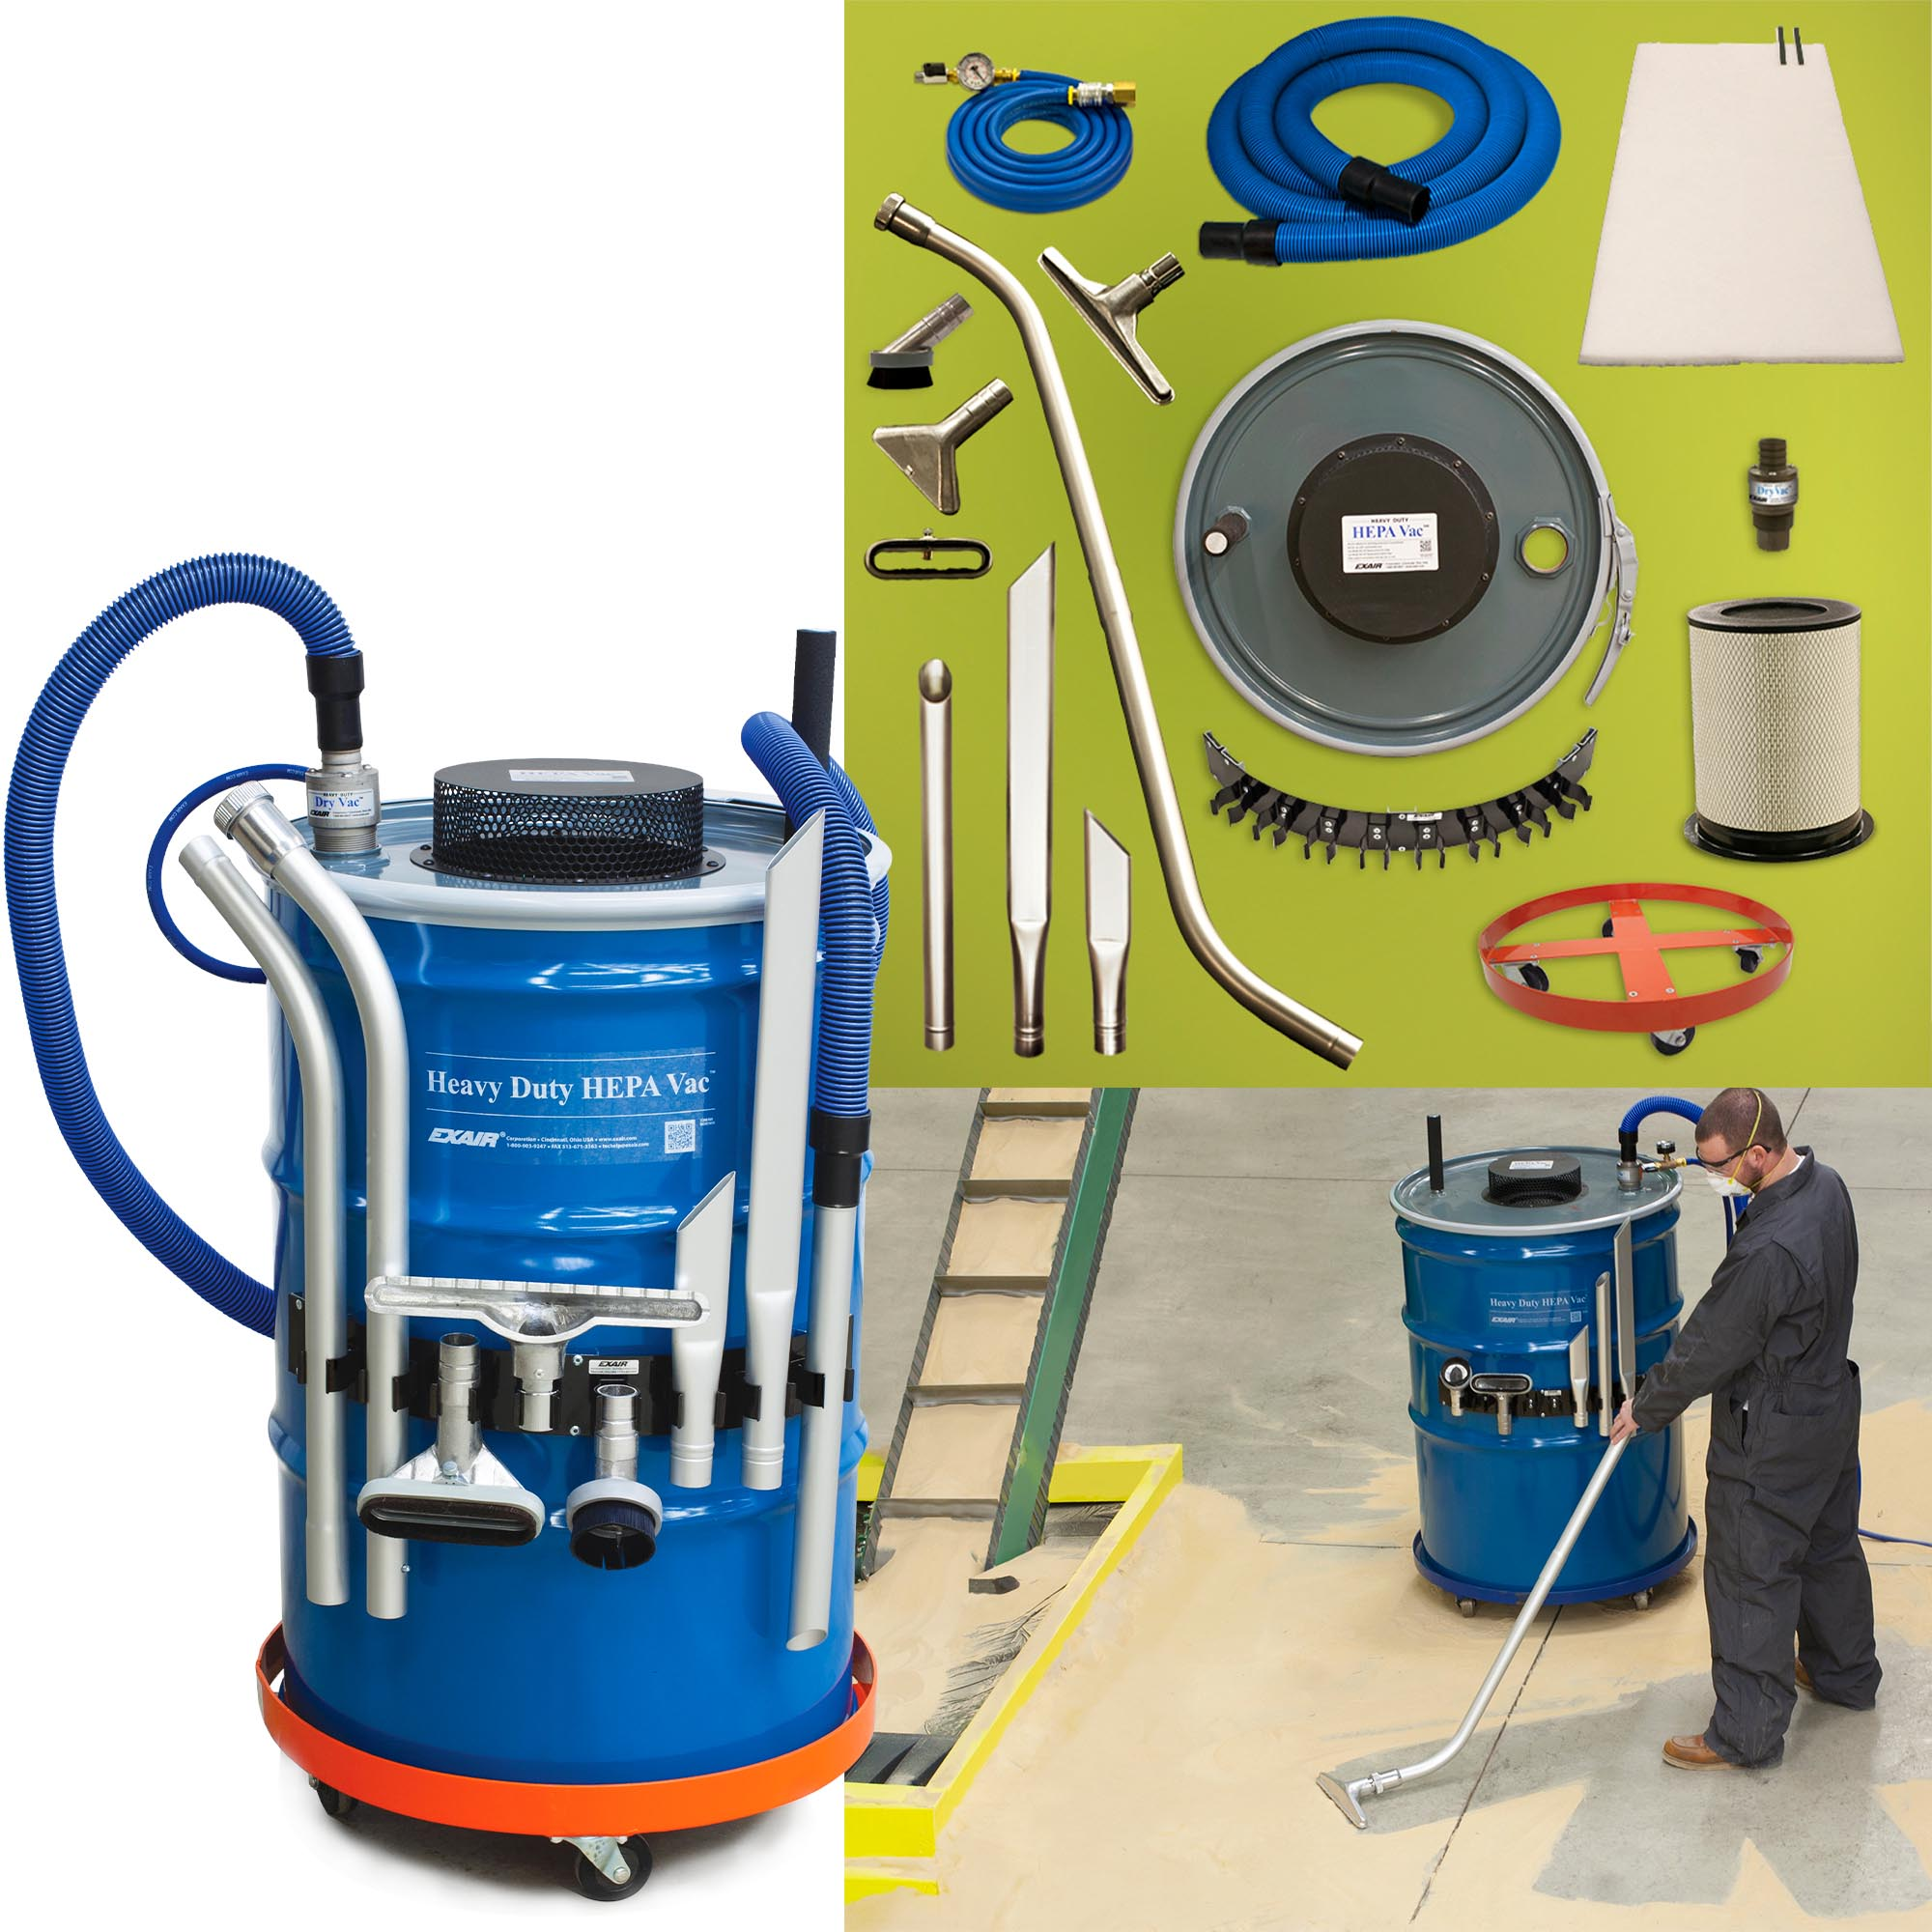 Heavy Duty HEPA Vac accessories include a variety of heavy duty tools, HEPA filter, Drum Dolly, Static resistant hose, compressed air supply hose, magnetic tool holder and more!